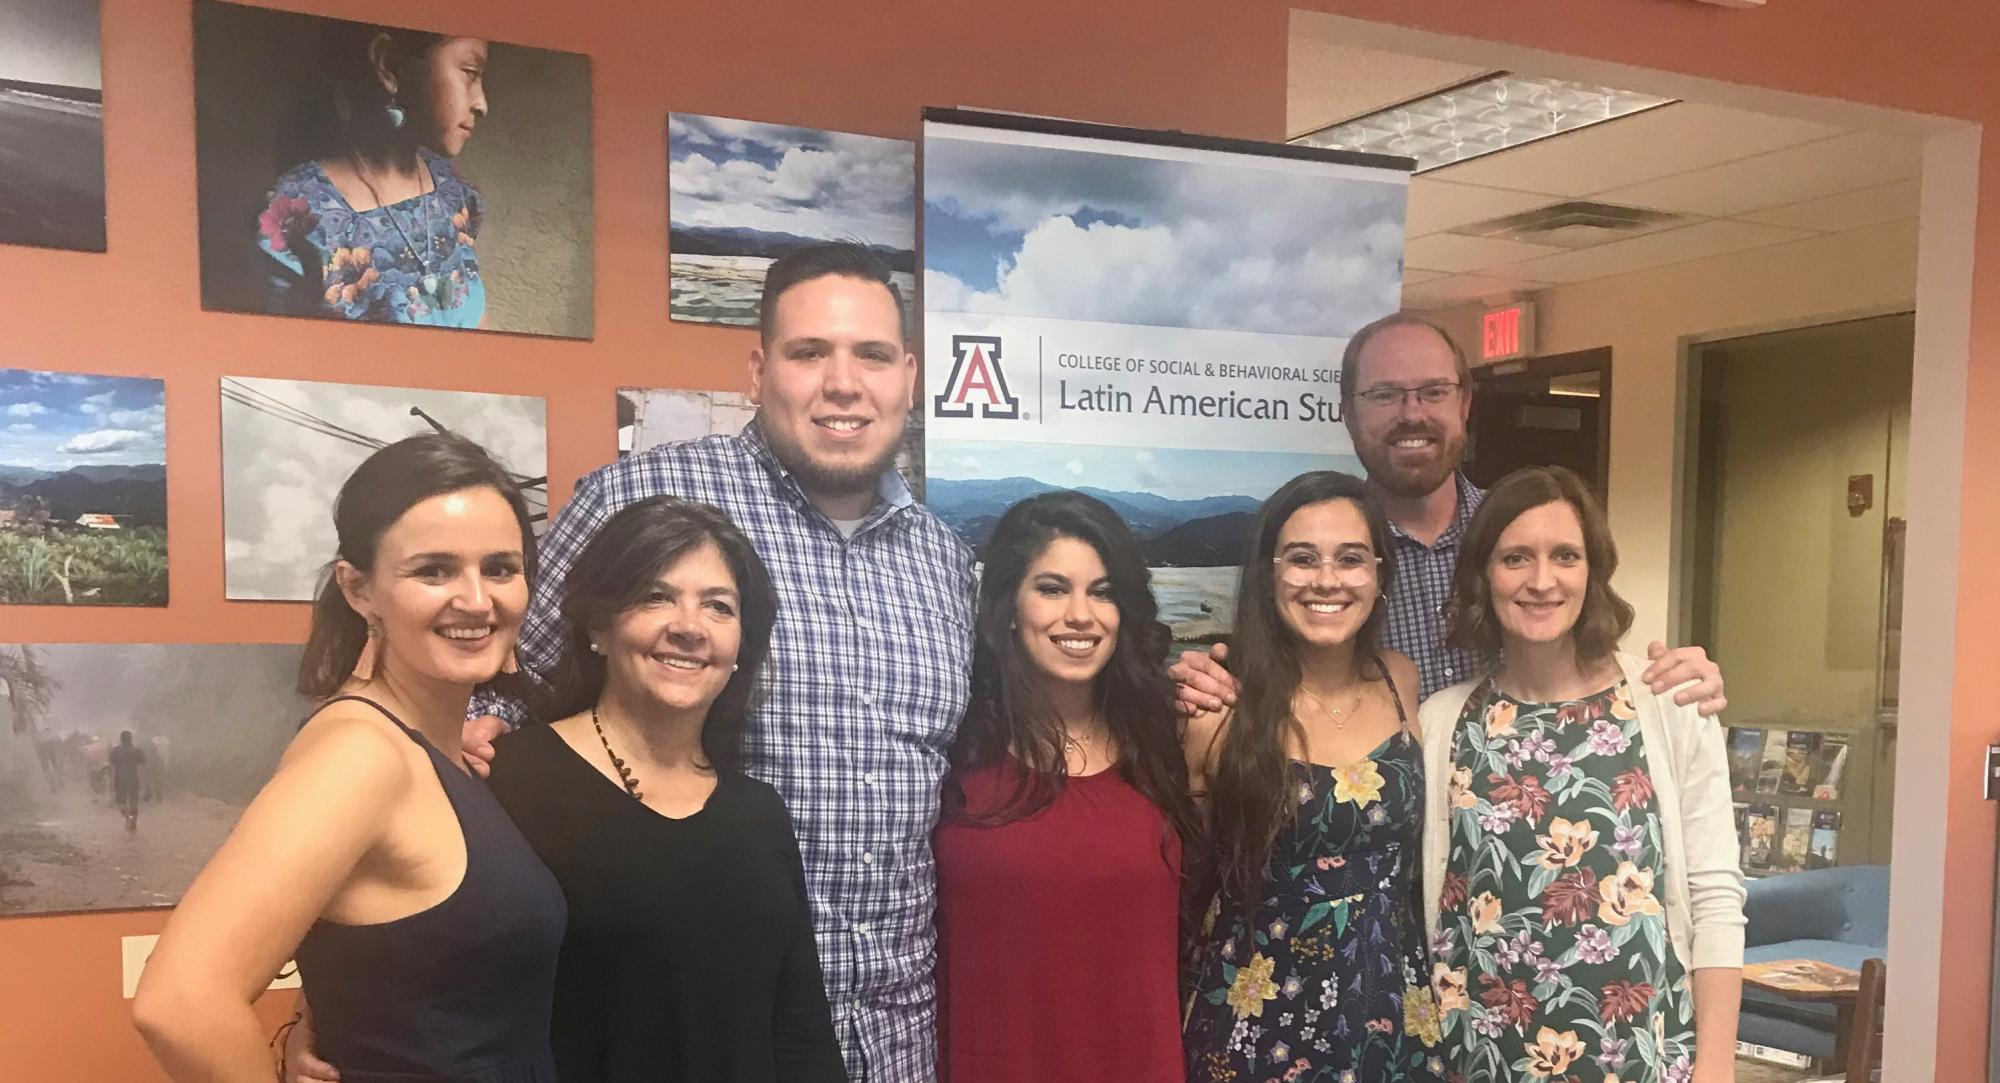 The Center for Latin America Studies team includes director Marcela Vasquez-Leon  and assistant director Colin Deeds .